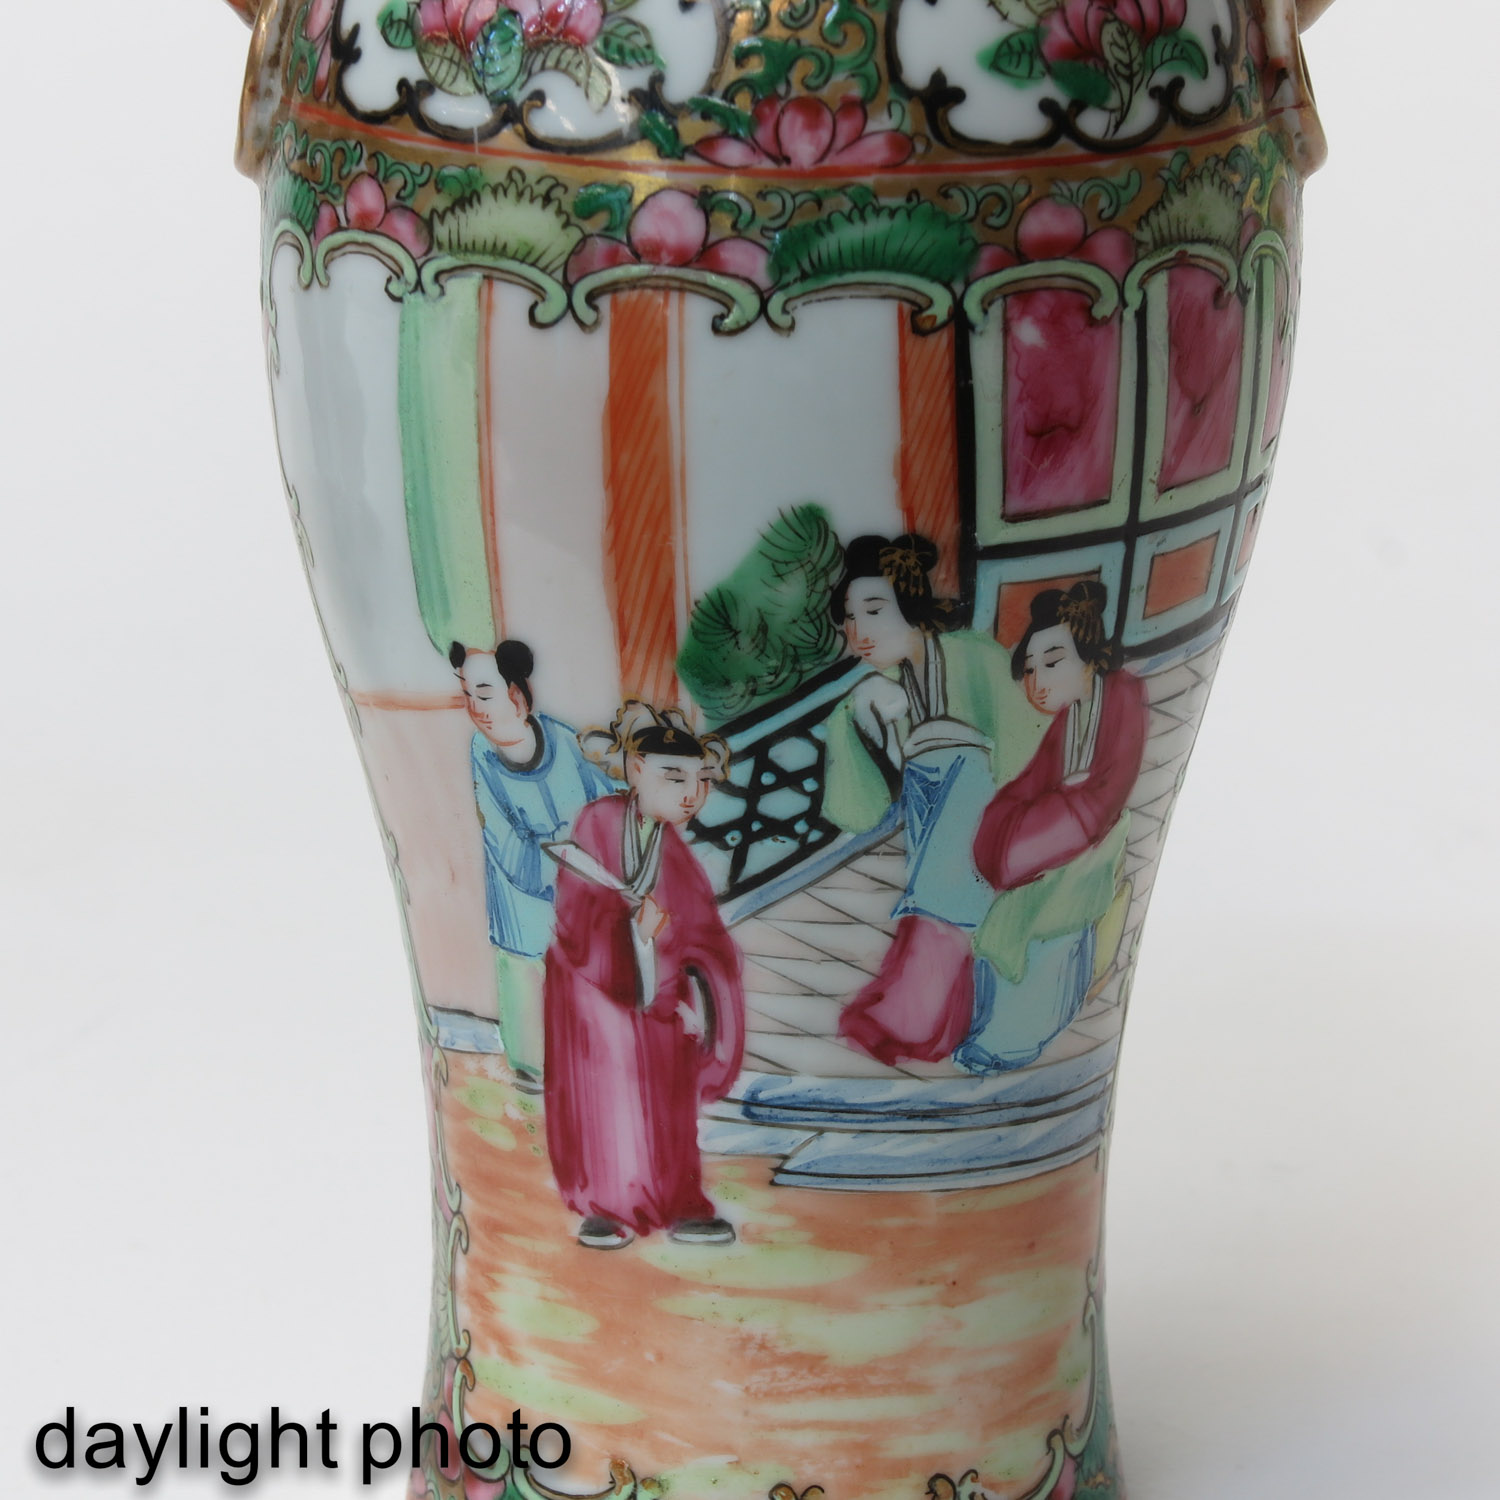 A Diverse Collection of Porcelain - Image 10 of 10